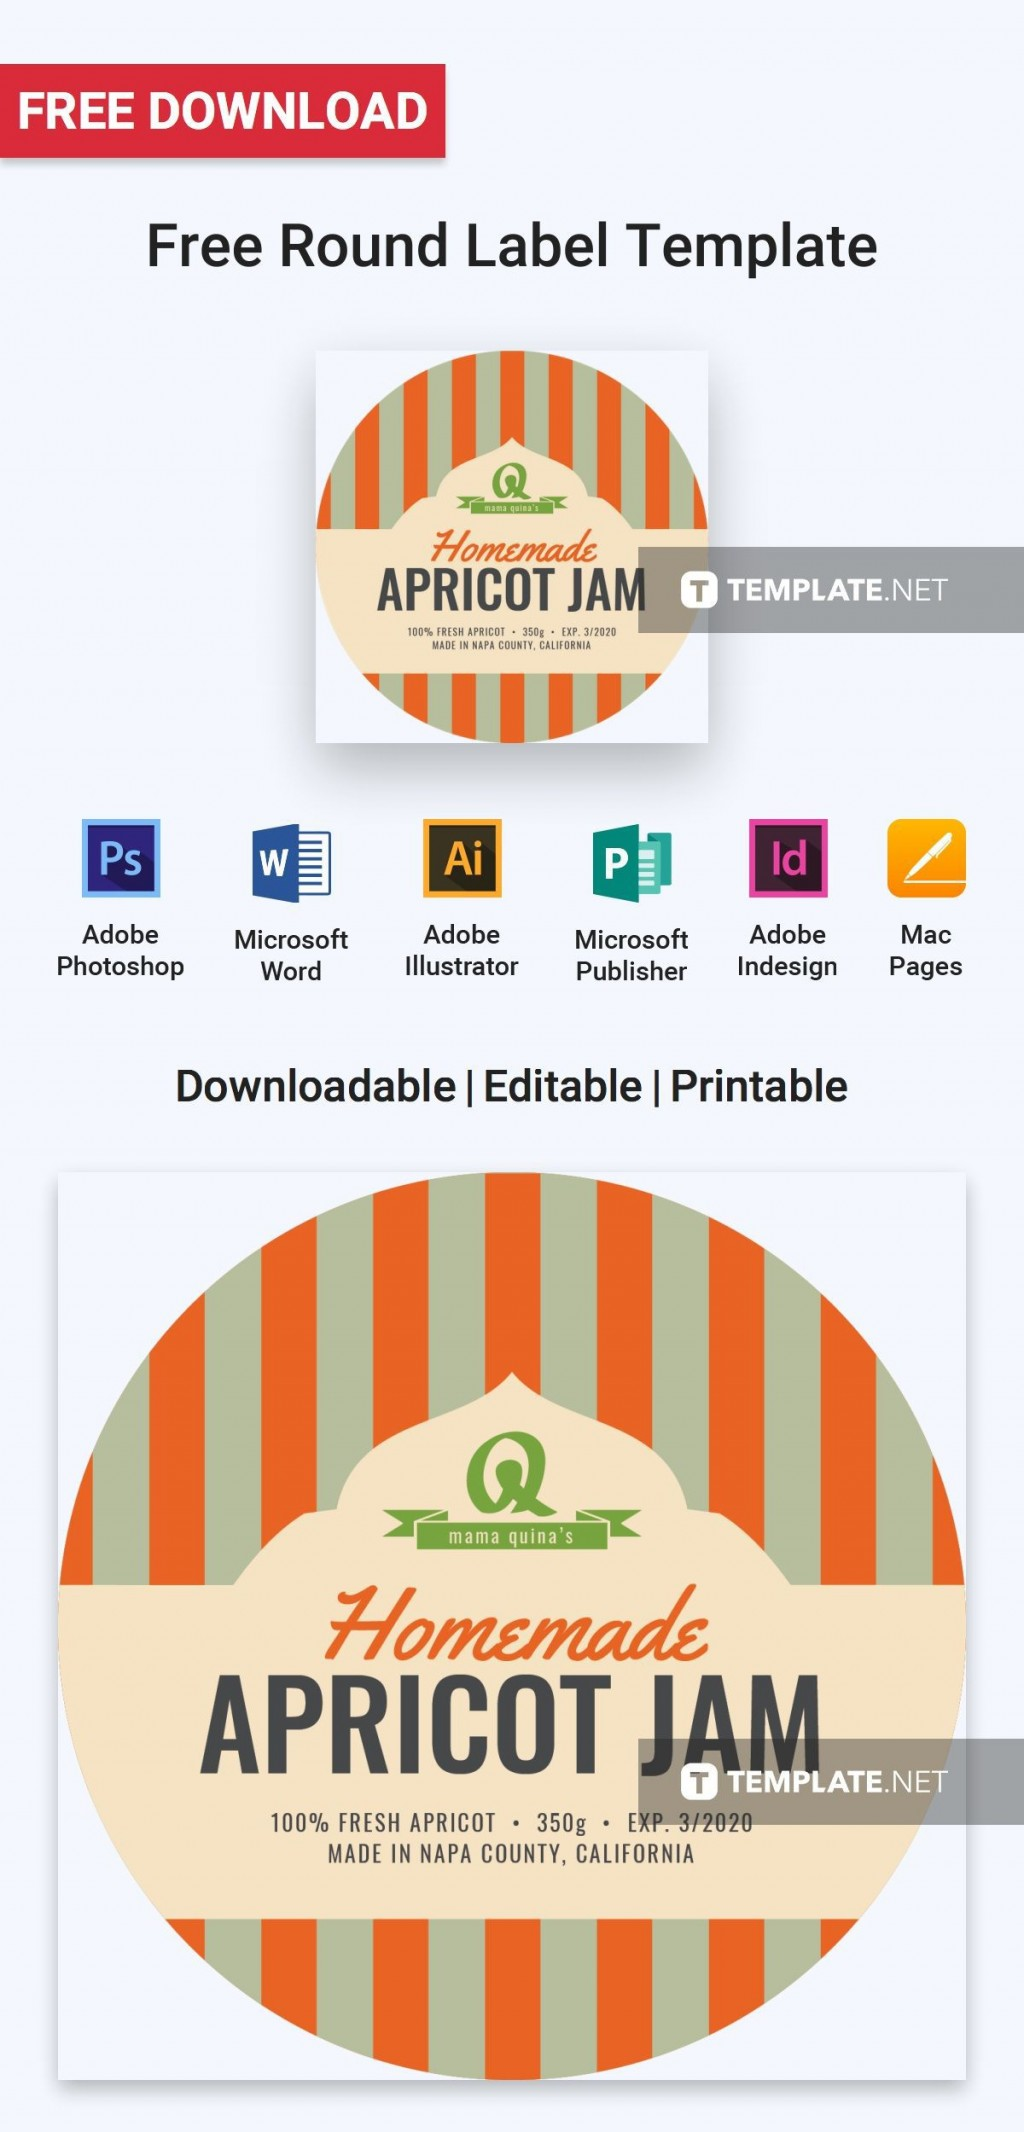 003 Surprising Microsoft Word Label Template Free Download High Definition Large